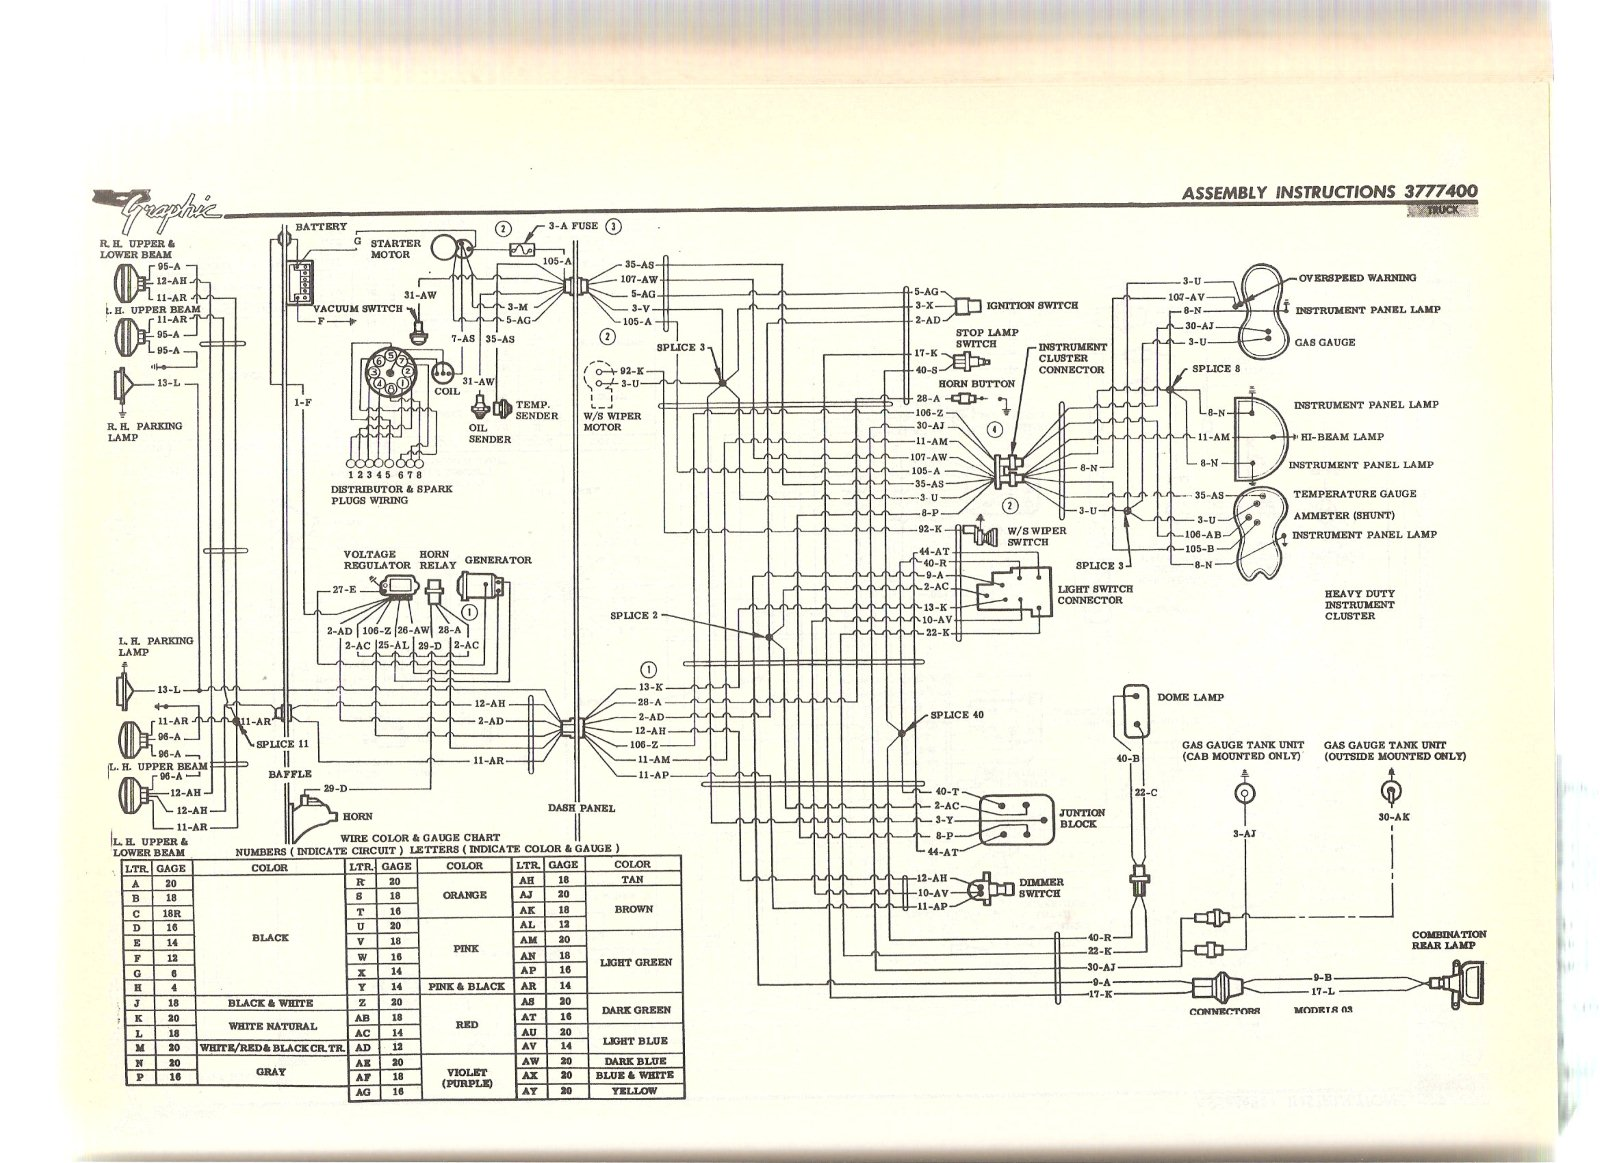 wiring diagram the present chevrolet gmc truck message wiring diagram the 1947 present chevrolet gmc truck message board network